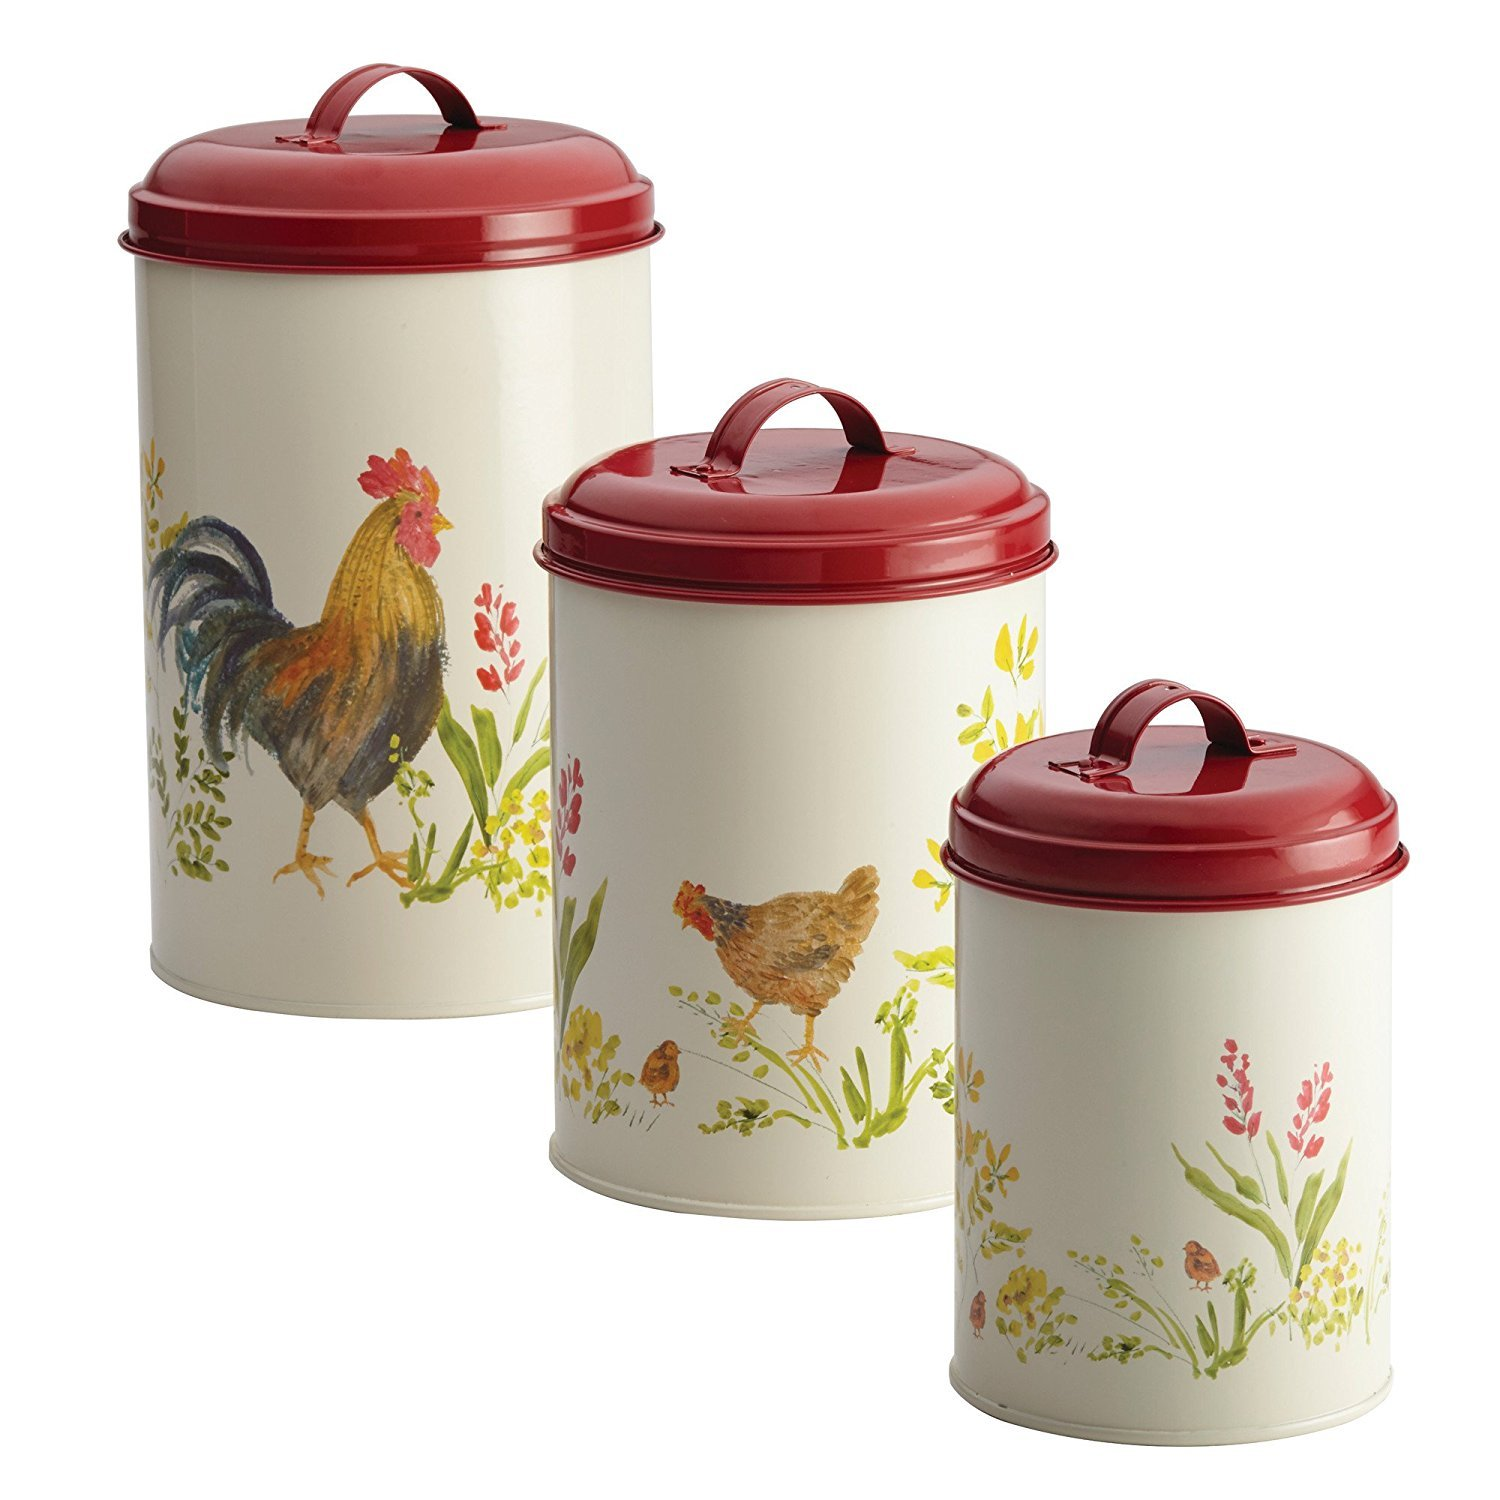 amazon com french country canister set kitchen storage paula deen 46595 3 piece garden rooster pantry ware food storage canister set large print